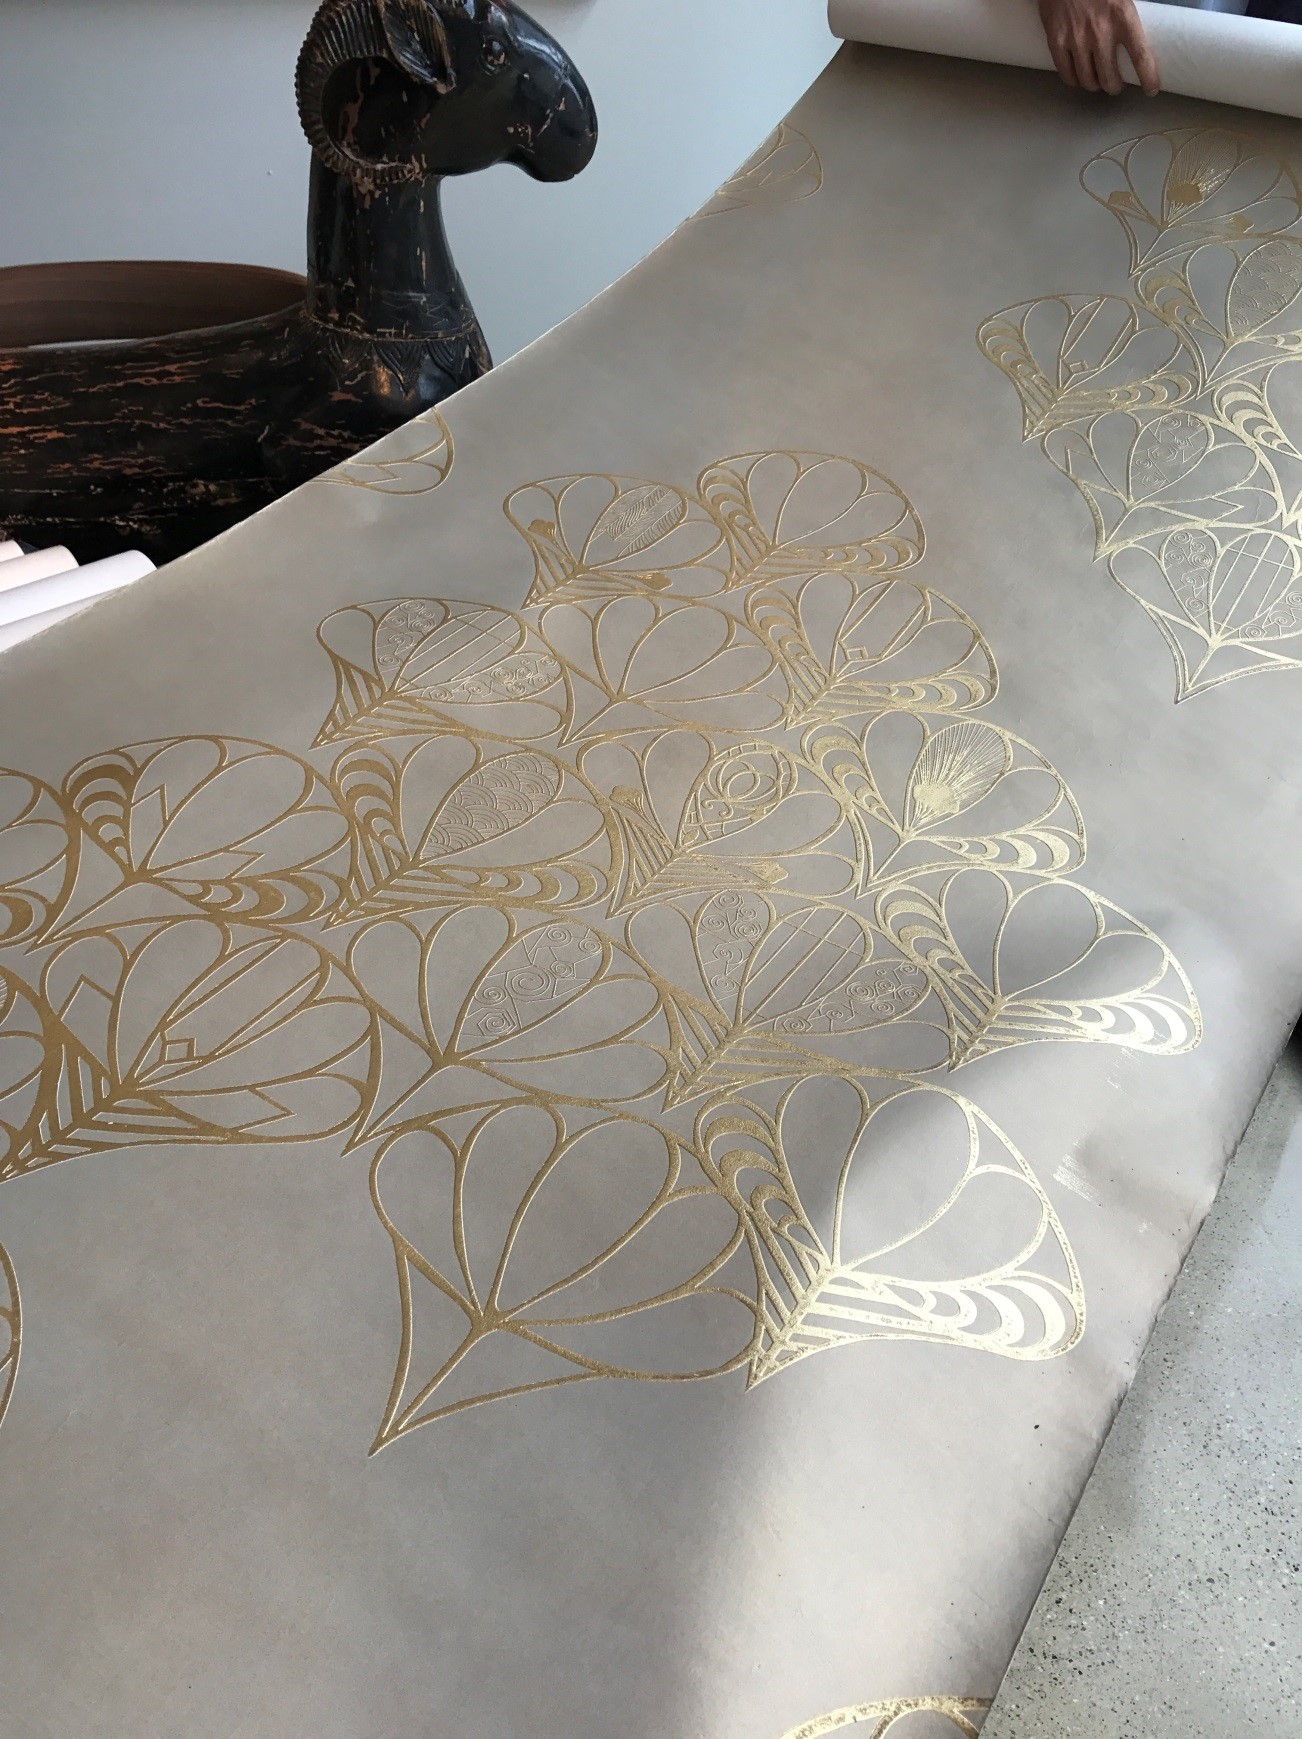 bas relief design with gold leaf